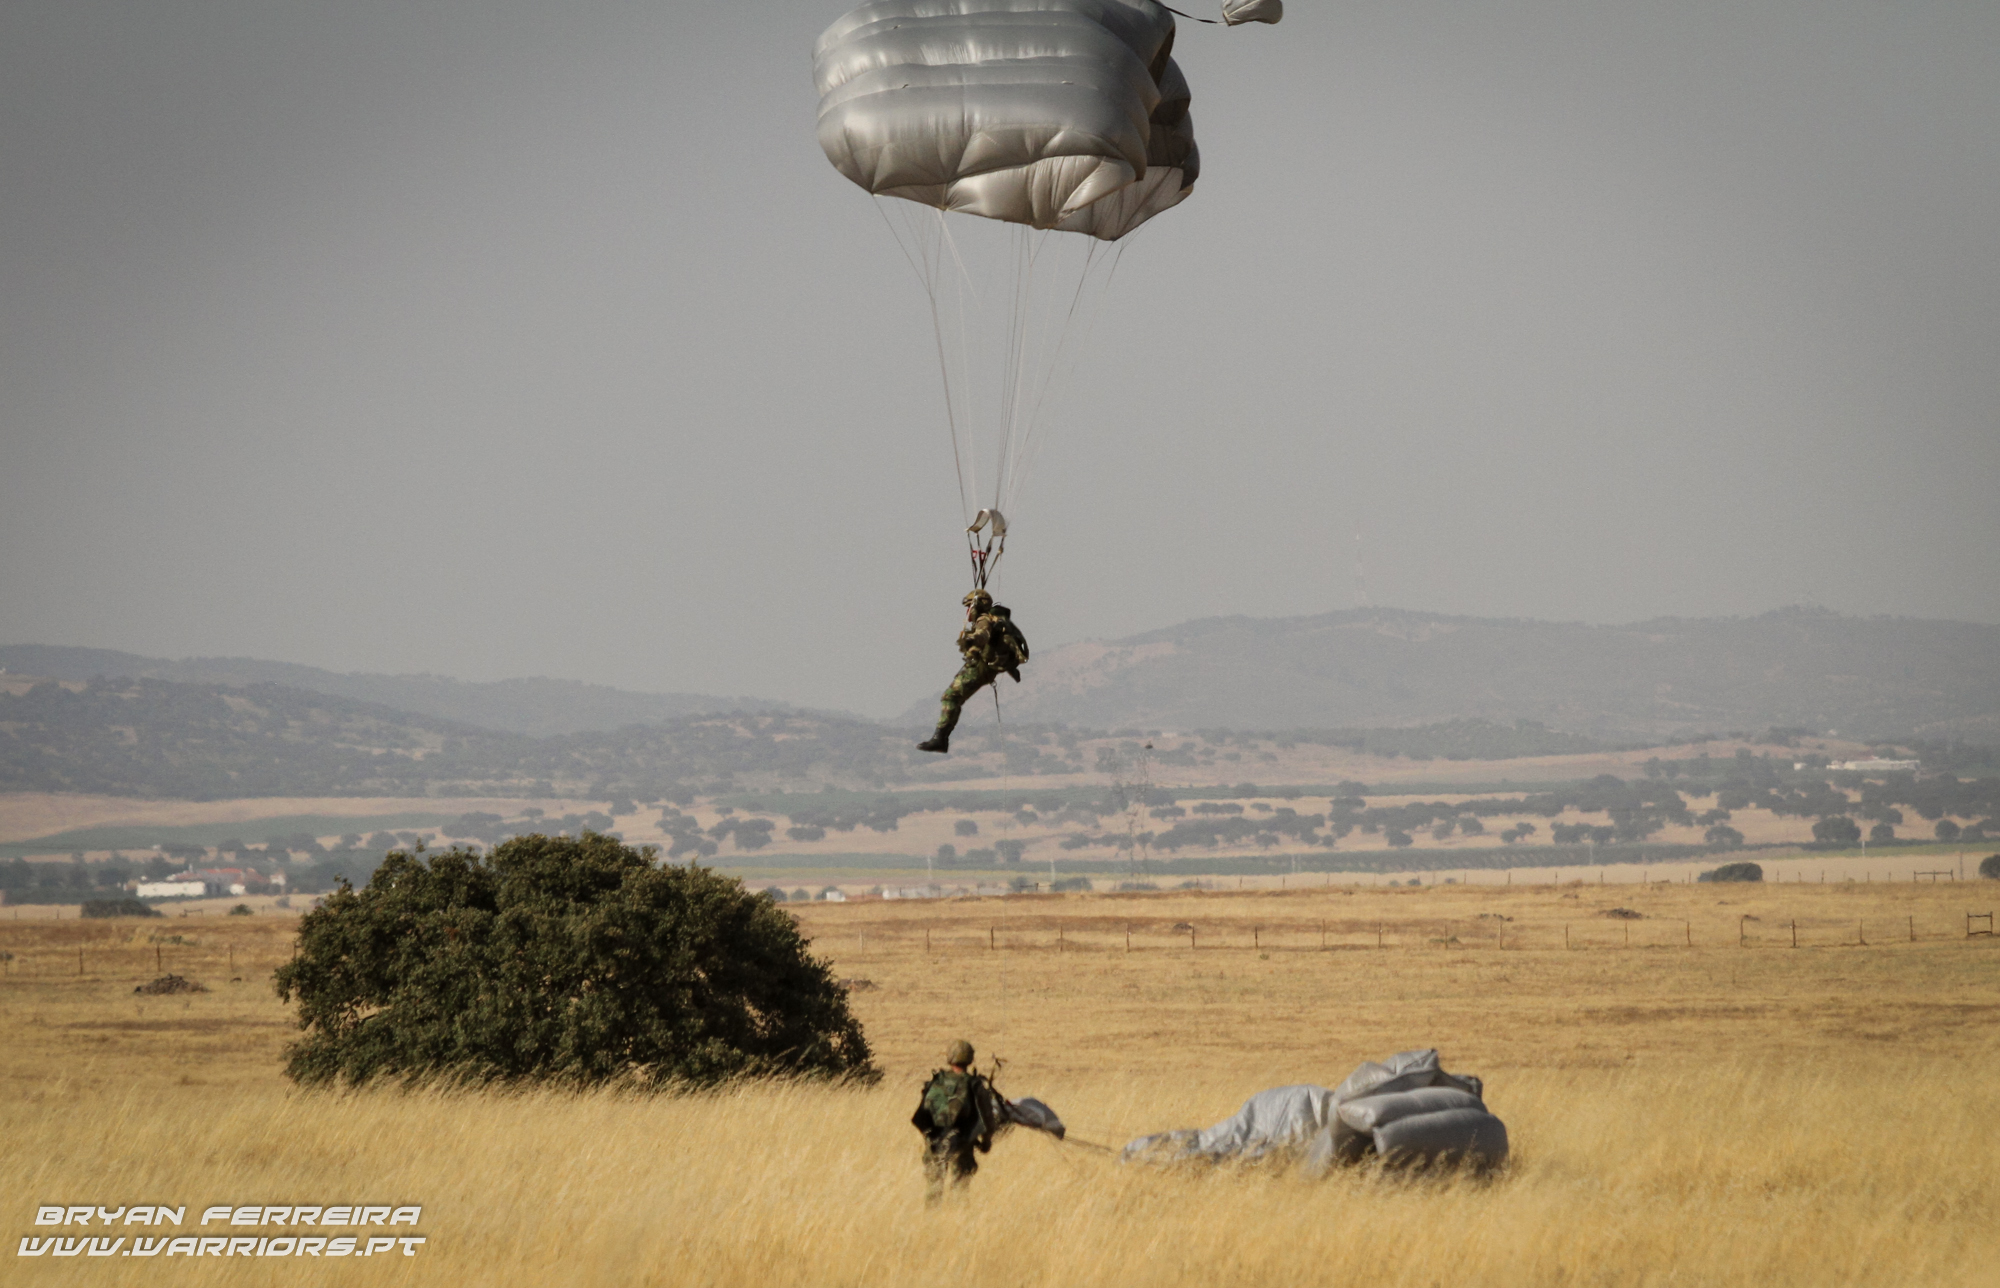 Orion 17 - Spain BRIPAC, 173rd Airborne Brigade and Portuguese Quick Reaction Brigade